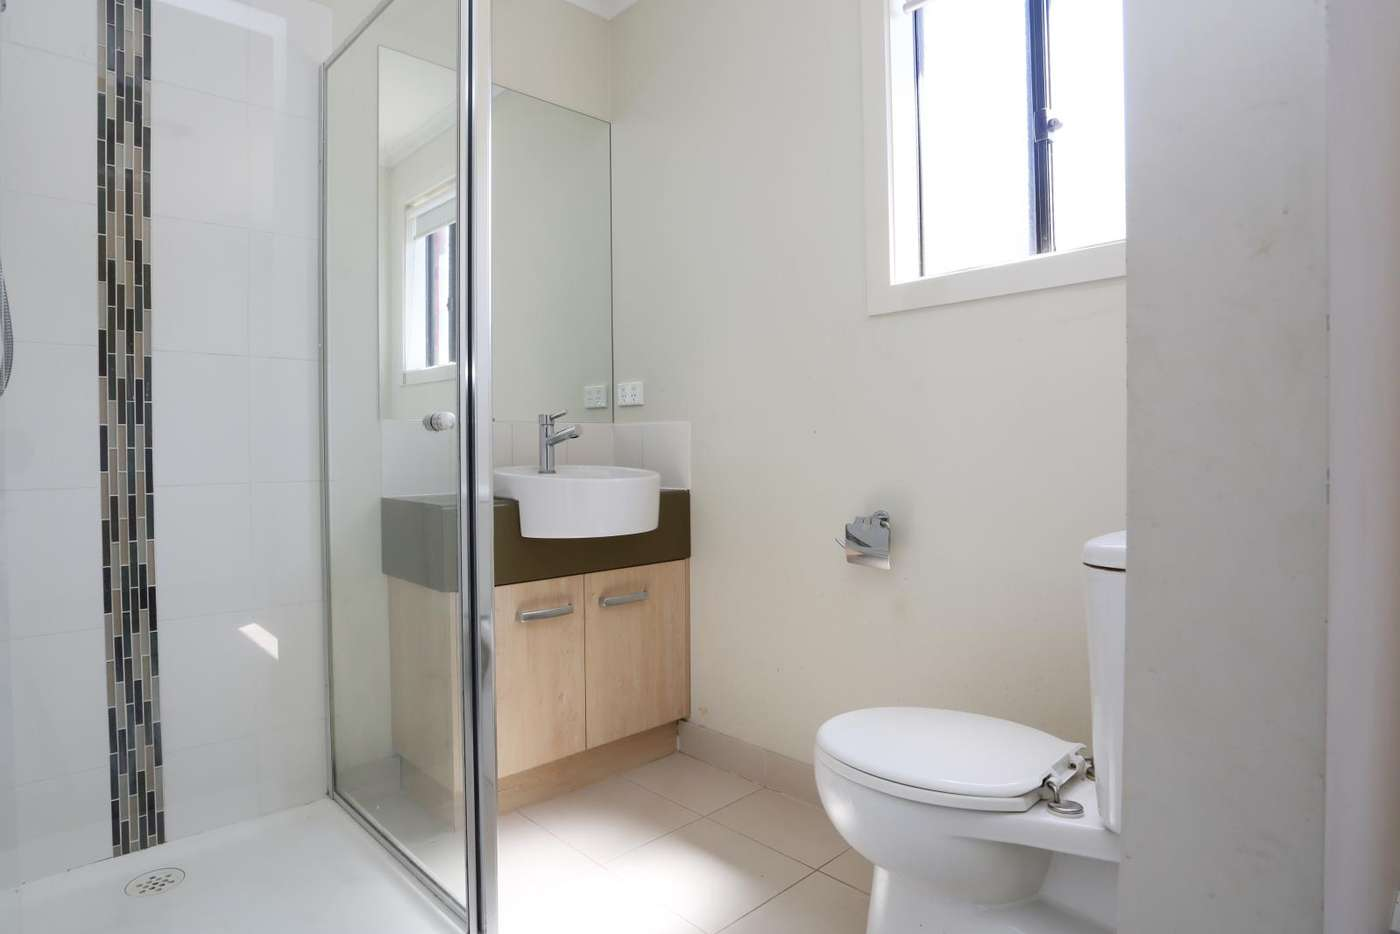 Sixth view of Homely house listing, 3 Butler Grove, Wyndham Vale VIC 3024